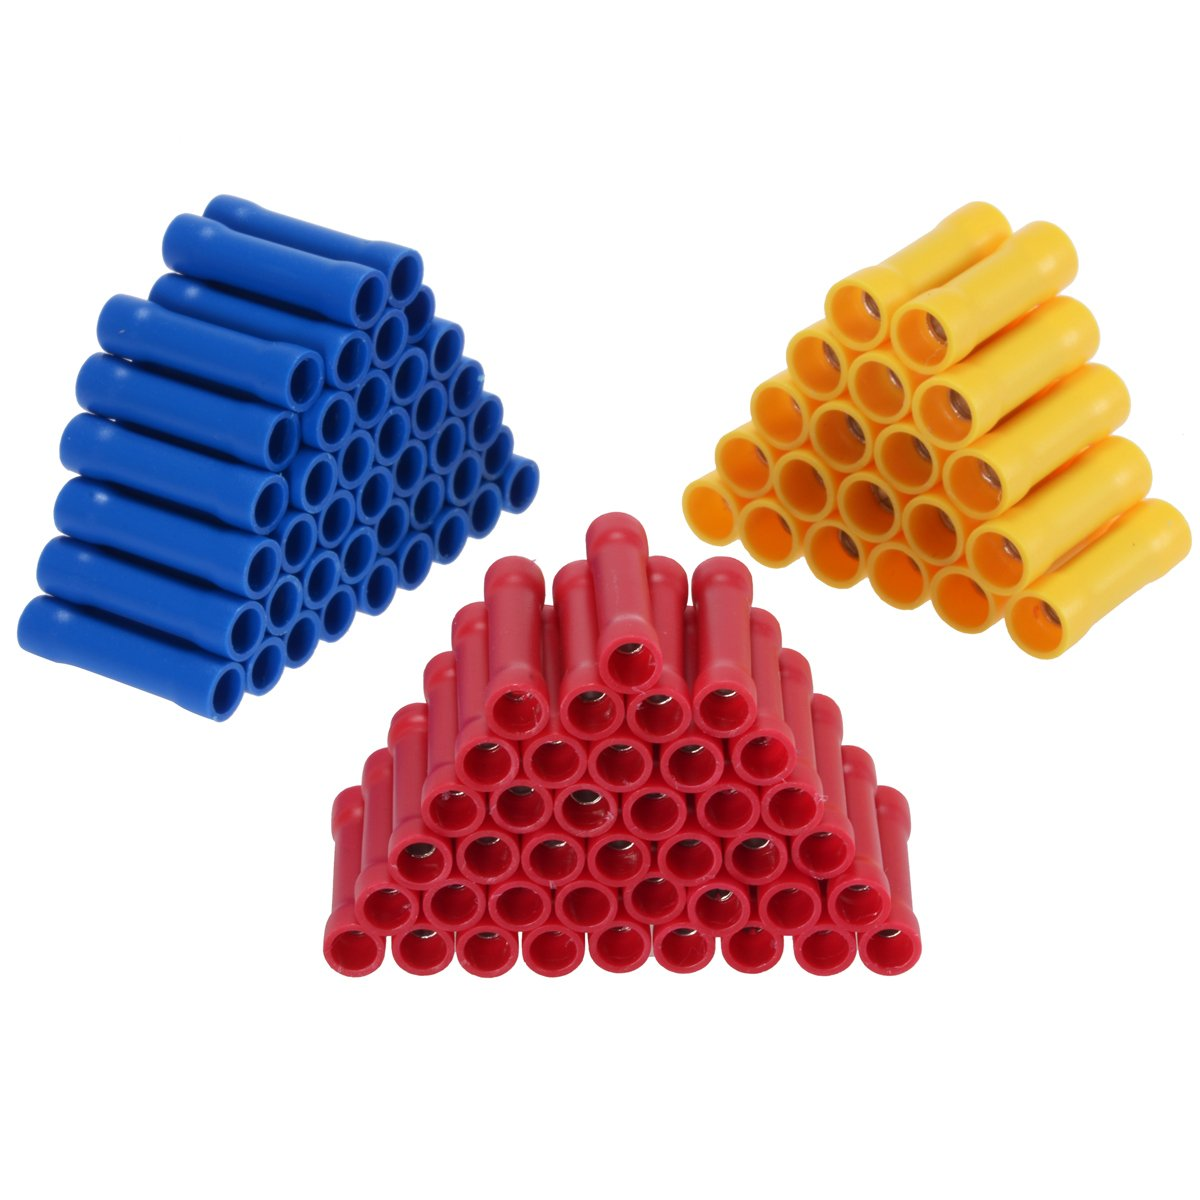 /16//16/ PChero 100/piezas de Assorted Insulated Straight Wire Butt Connector Electrical Automotive Cable Crimp Terminales para 22/ /14//12/ /10/AWG vino